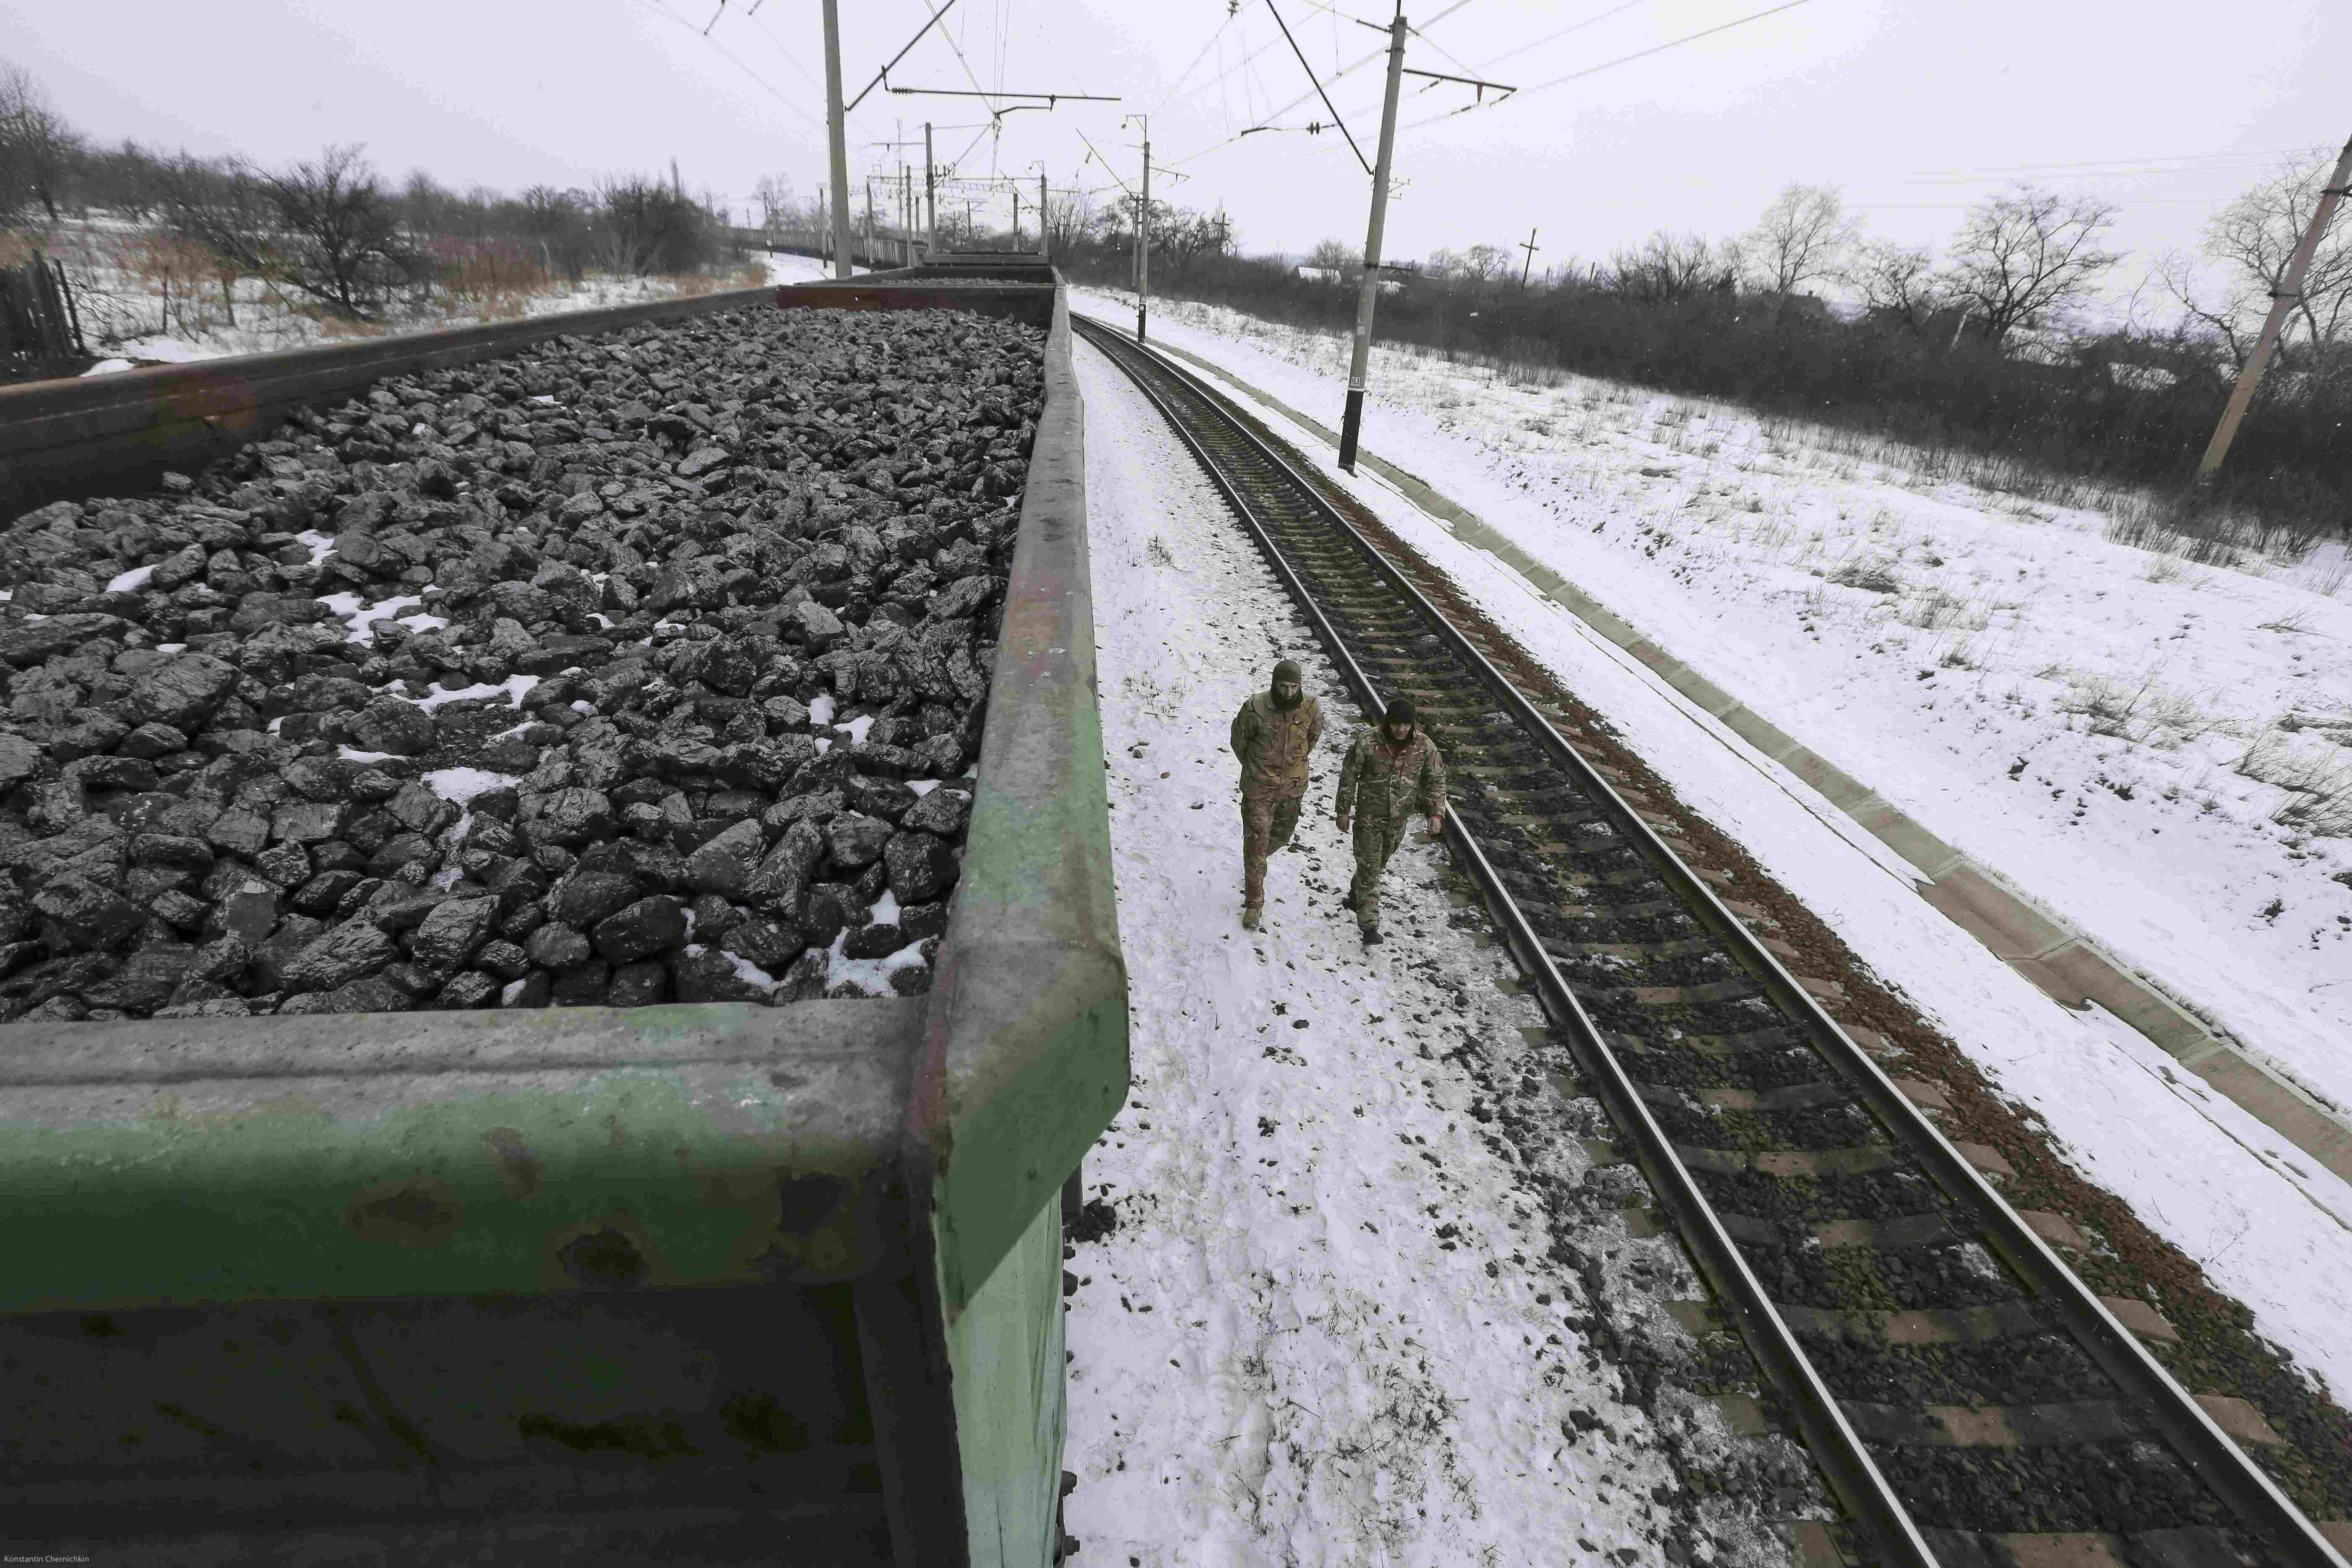 FILE PHOTO: Activists walk along carriages loaded with coal from the occupied territories which they blocked at Kryvyi Torets station in the village of Shcherbivka in Donetsk region, Ukraine, February 14, 2017. REUTERS/Konstantin Chernichkin/File Photo